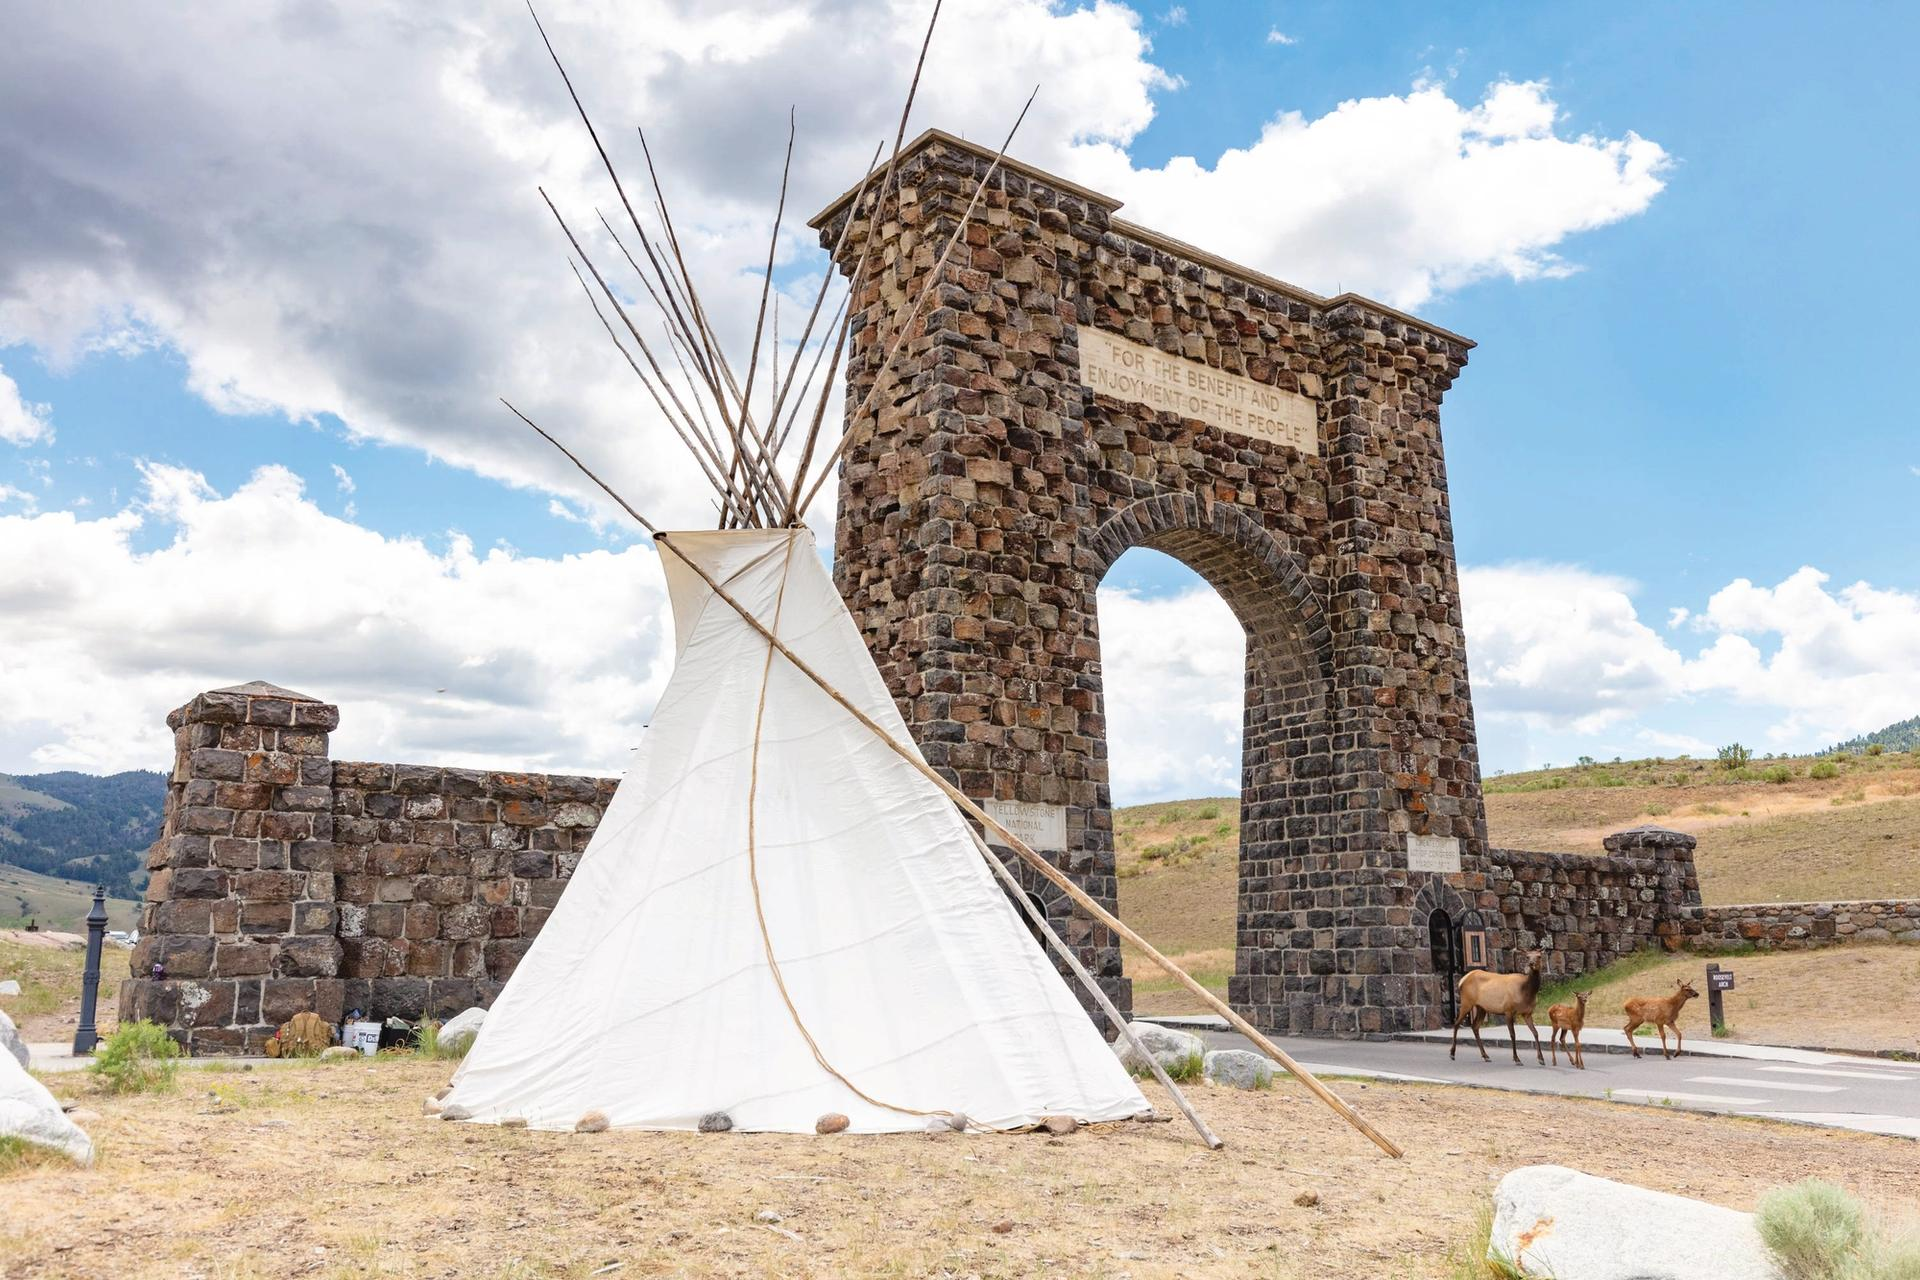 A Yellowstone Revealed summit organised by Mountain Time Arts at the Roosevelt Arch, at the northern entrance to Yellowstone National Park, drew attention to the history of Indigenous culture in the region Courtesy of Mountain Time Arts